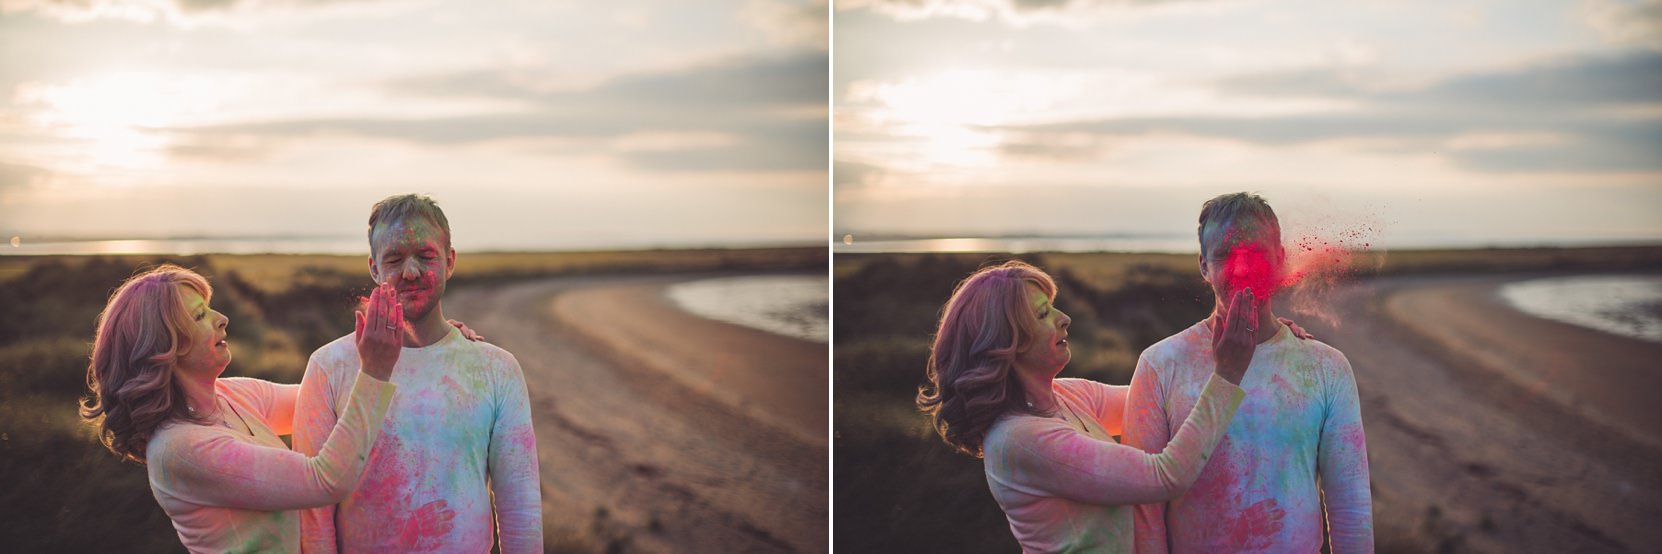 Engagement-Beach-Shoot_0053